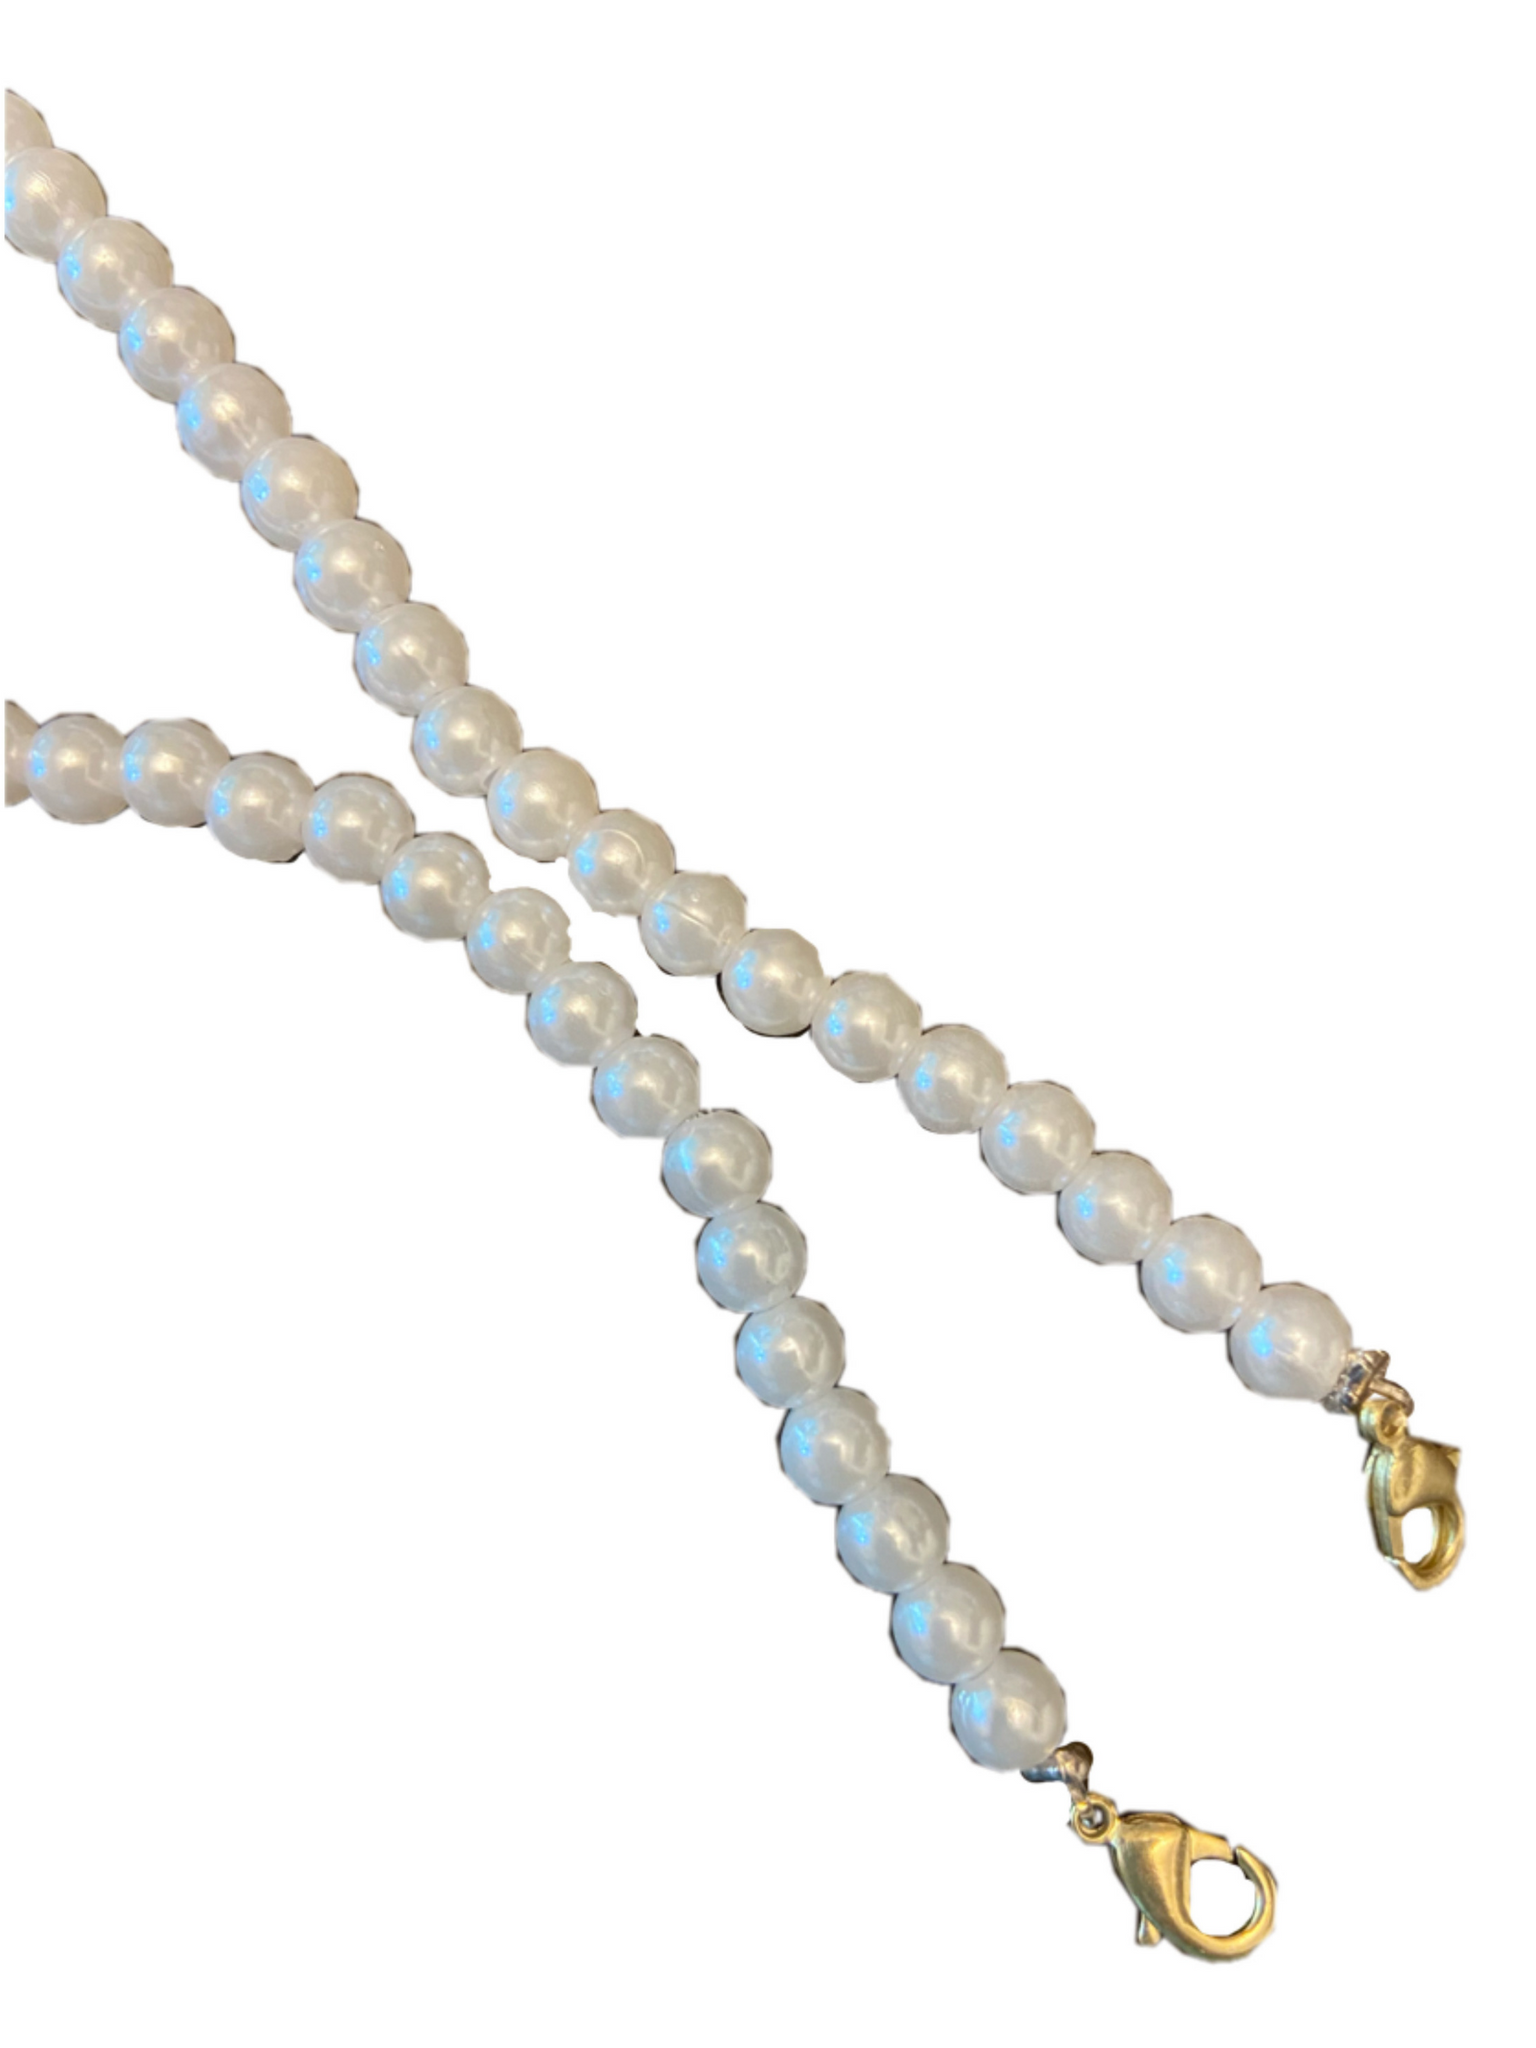 The Cinderella All White Pearl Mask Chain